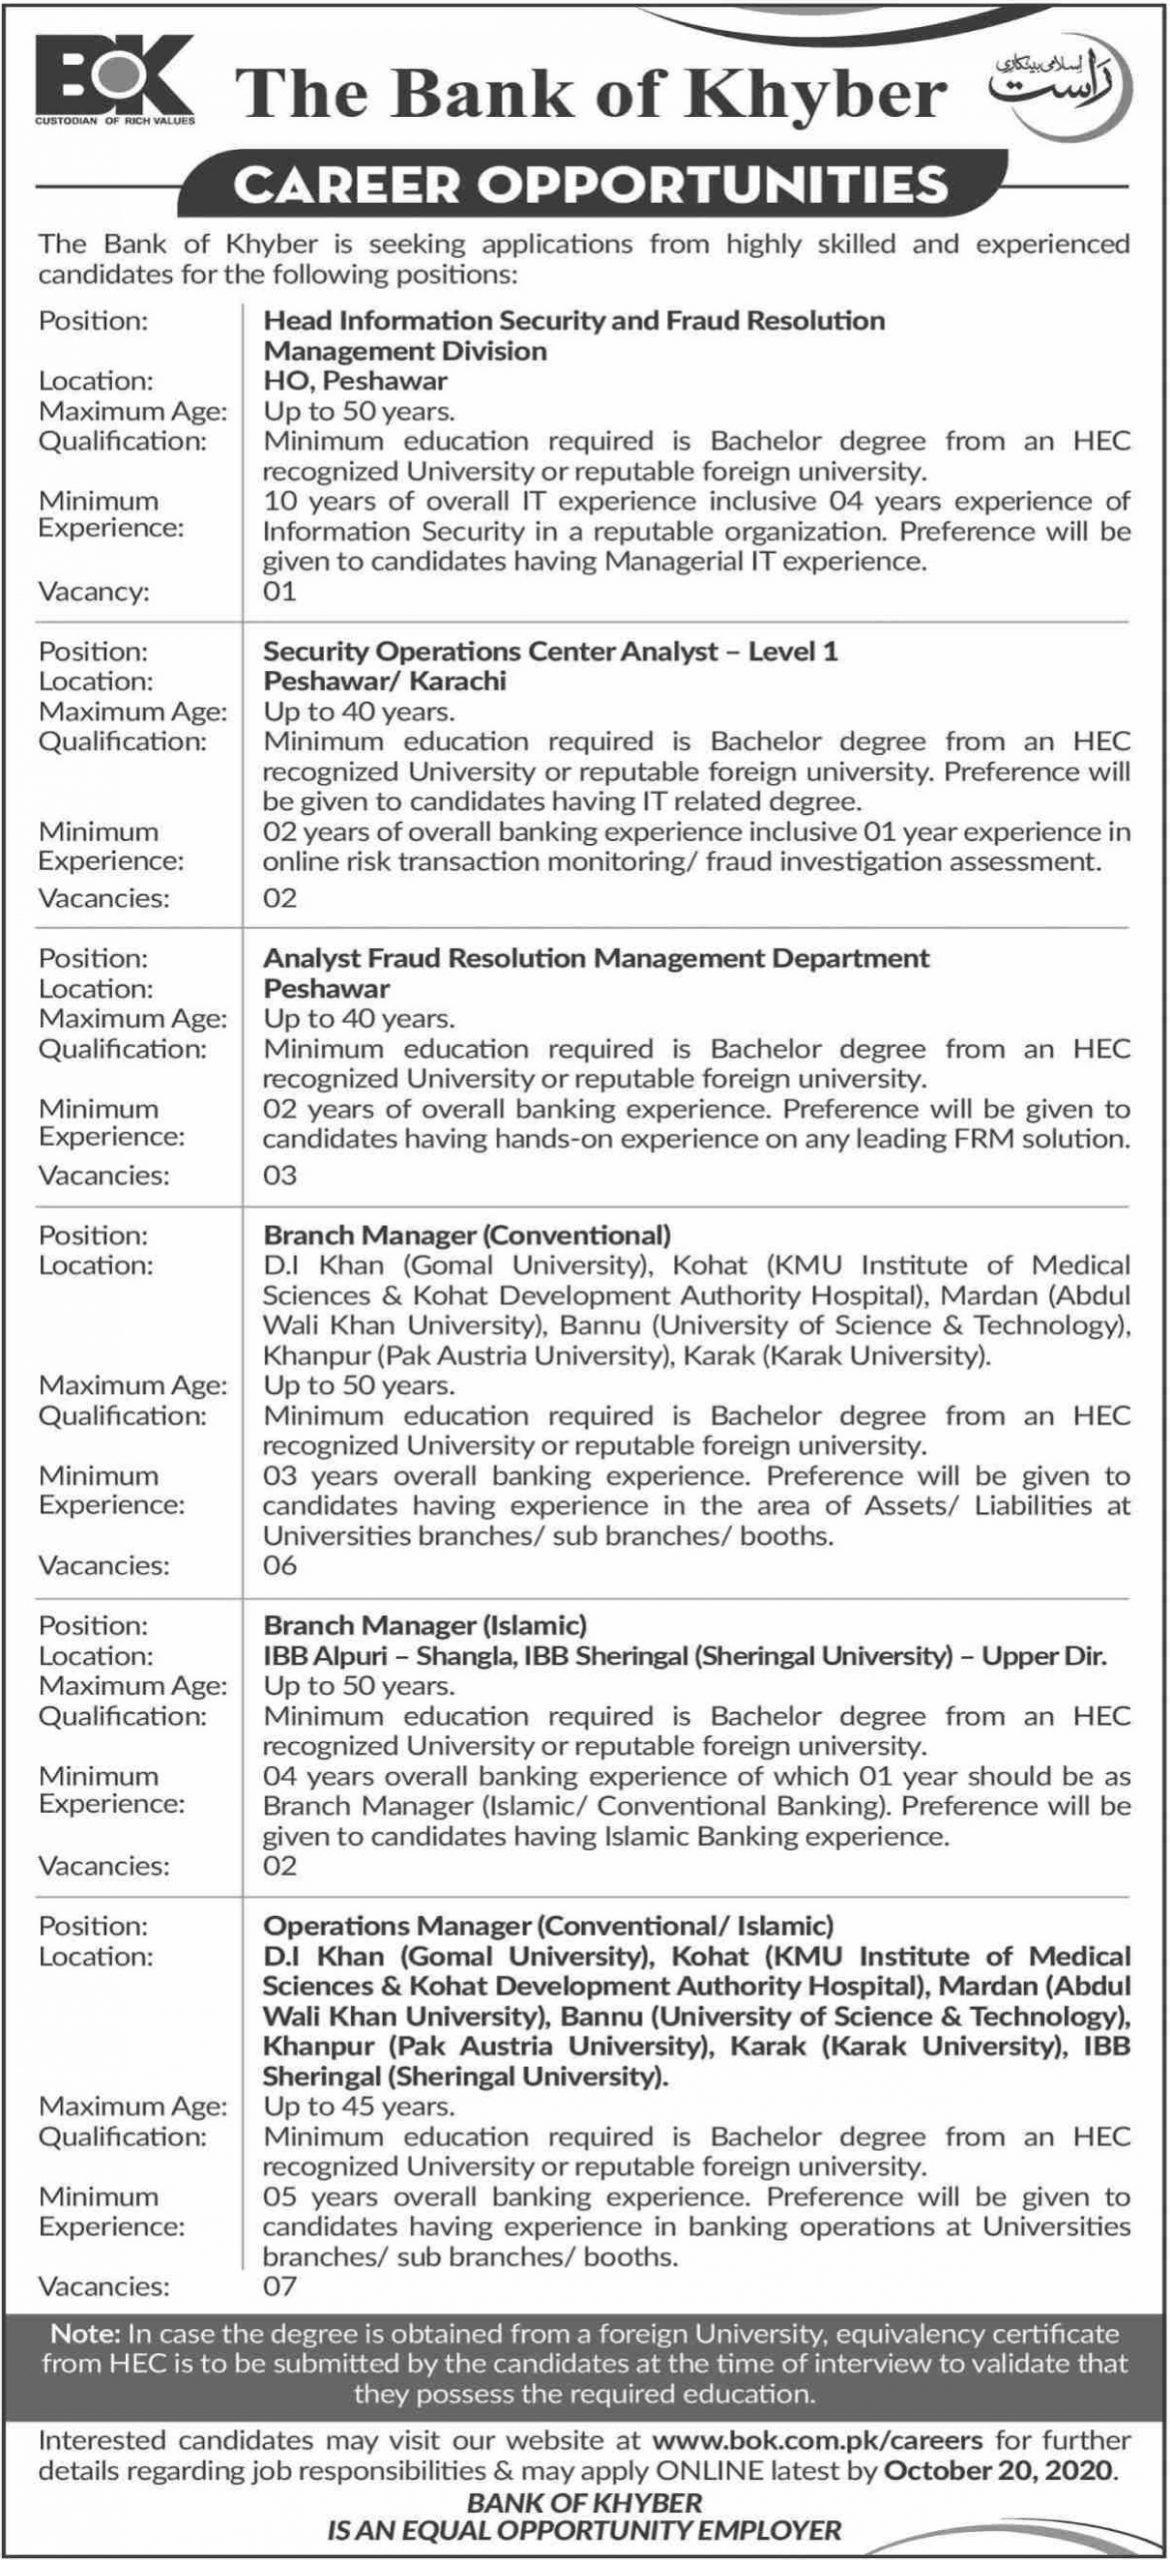 The Bank of Khyber BOK Jobs October 2020